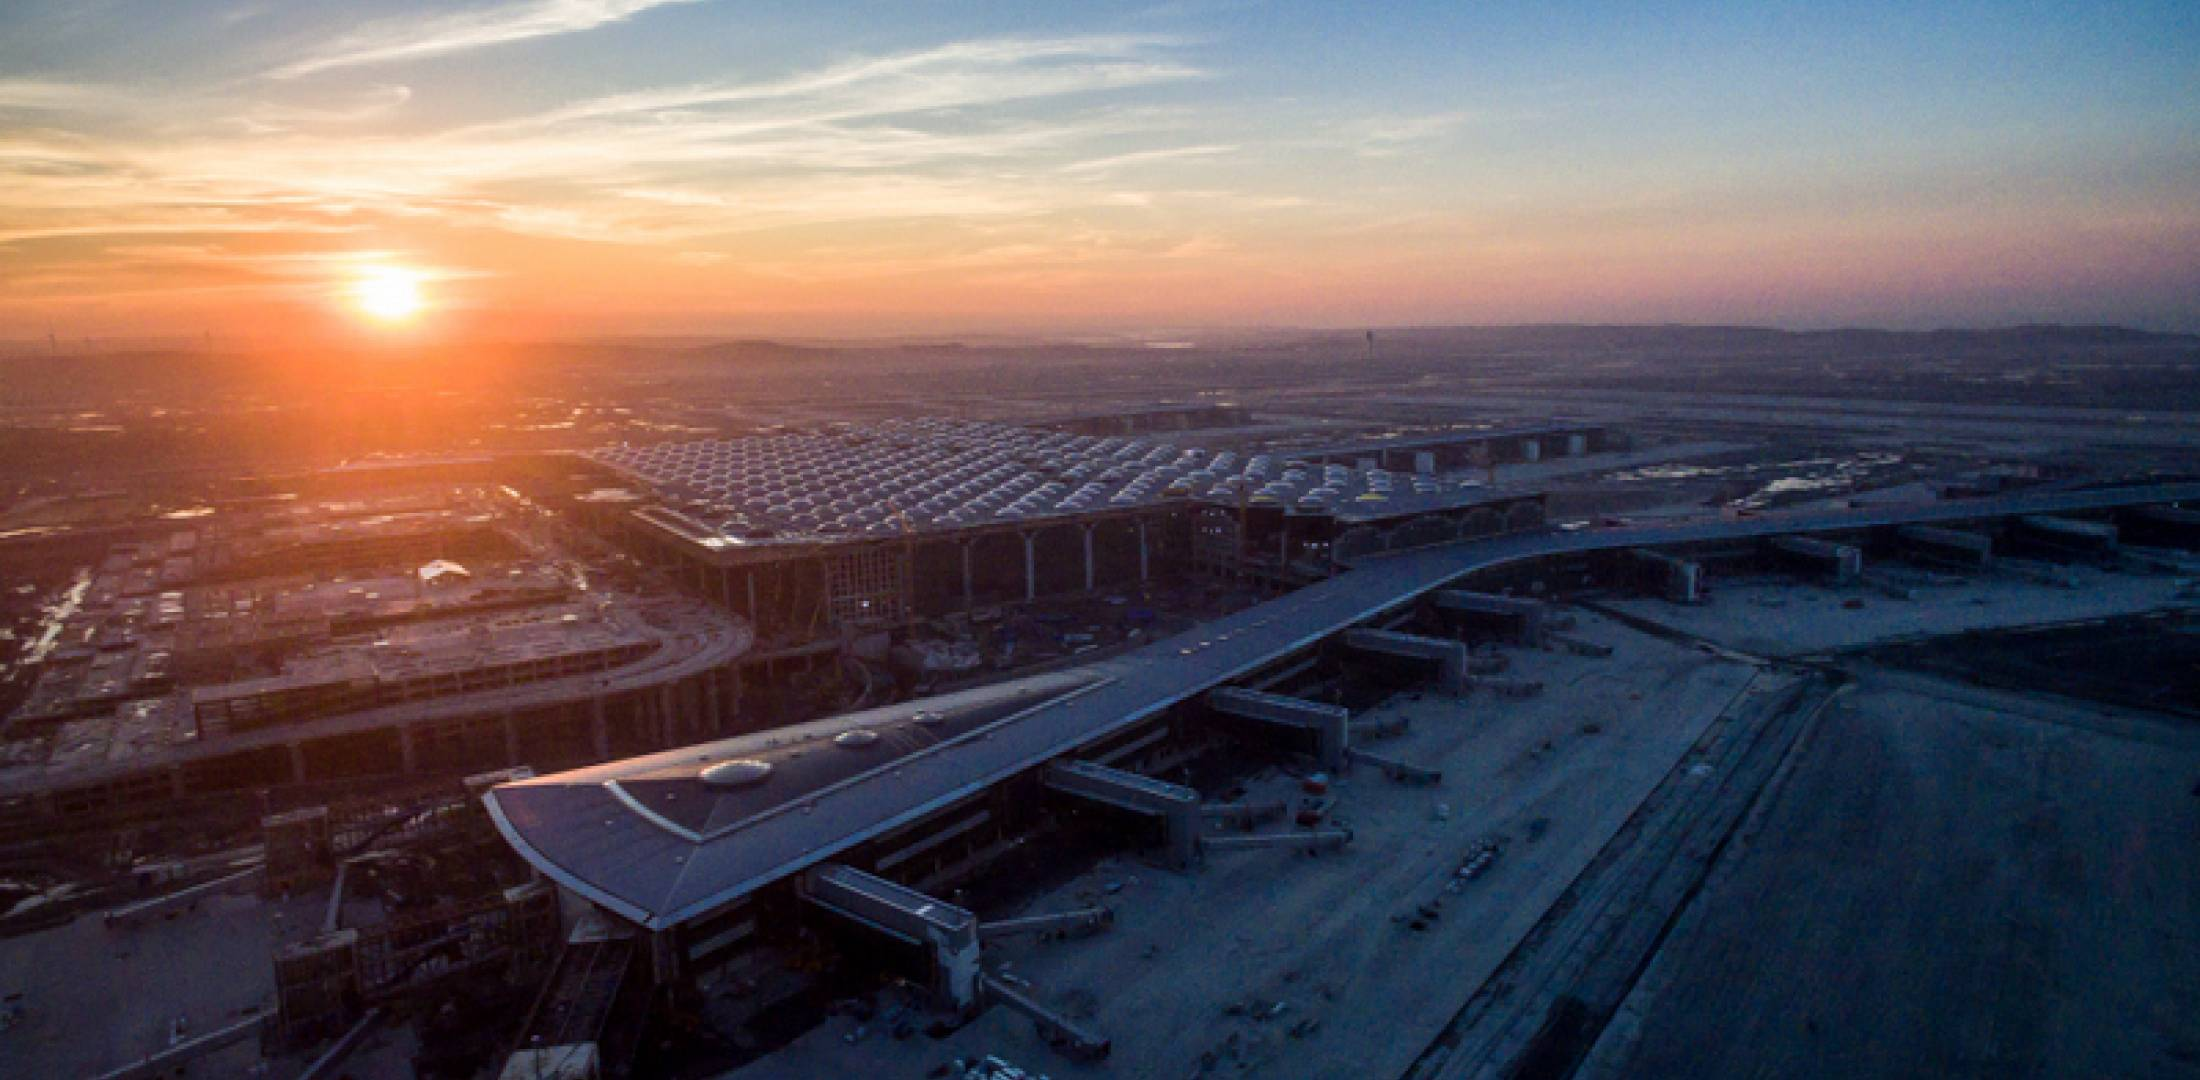 cd5e31d2f4 Istanbul s New Mega-airport To Be Fully Operational in April